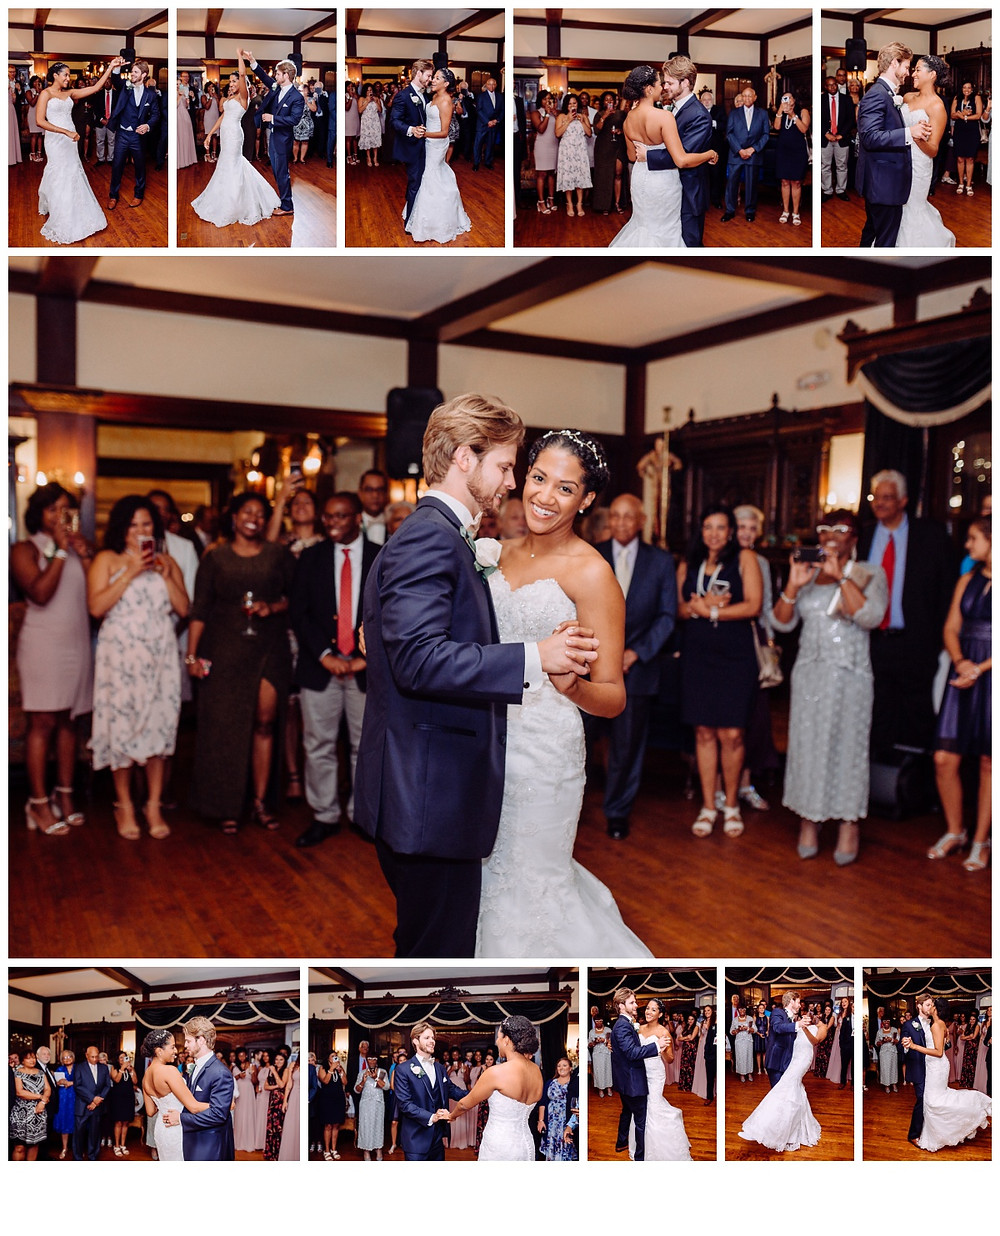 First dance as husband and wife at Gramercy Mansion captured by Katherine Elizabeth Photography